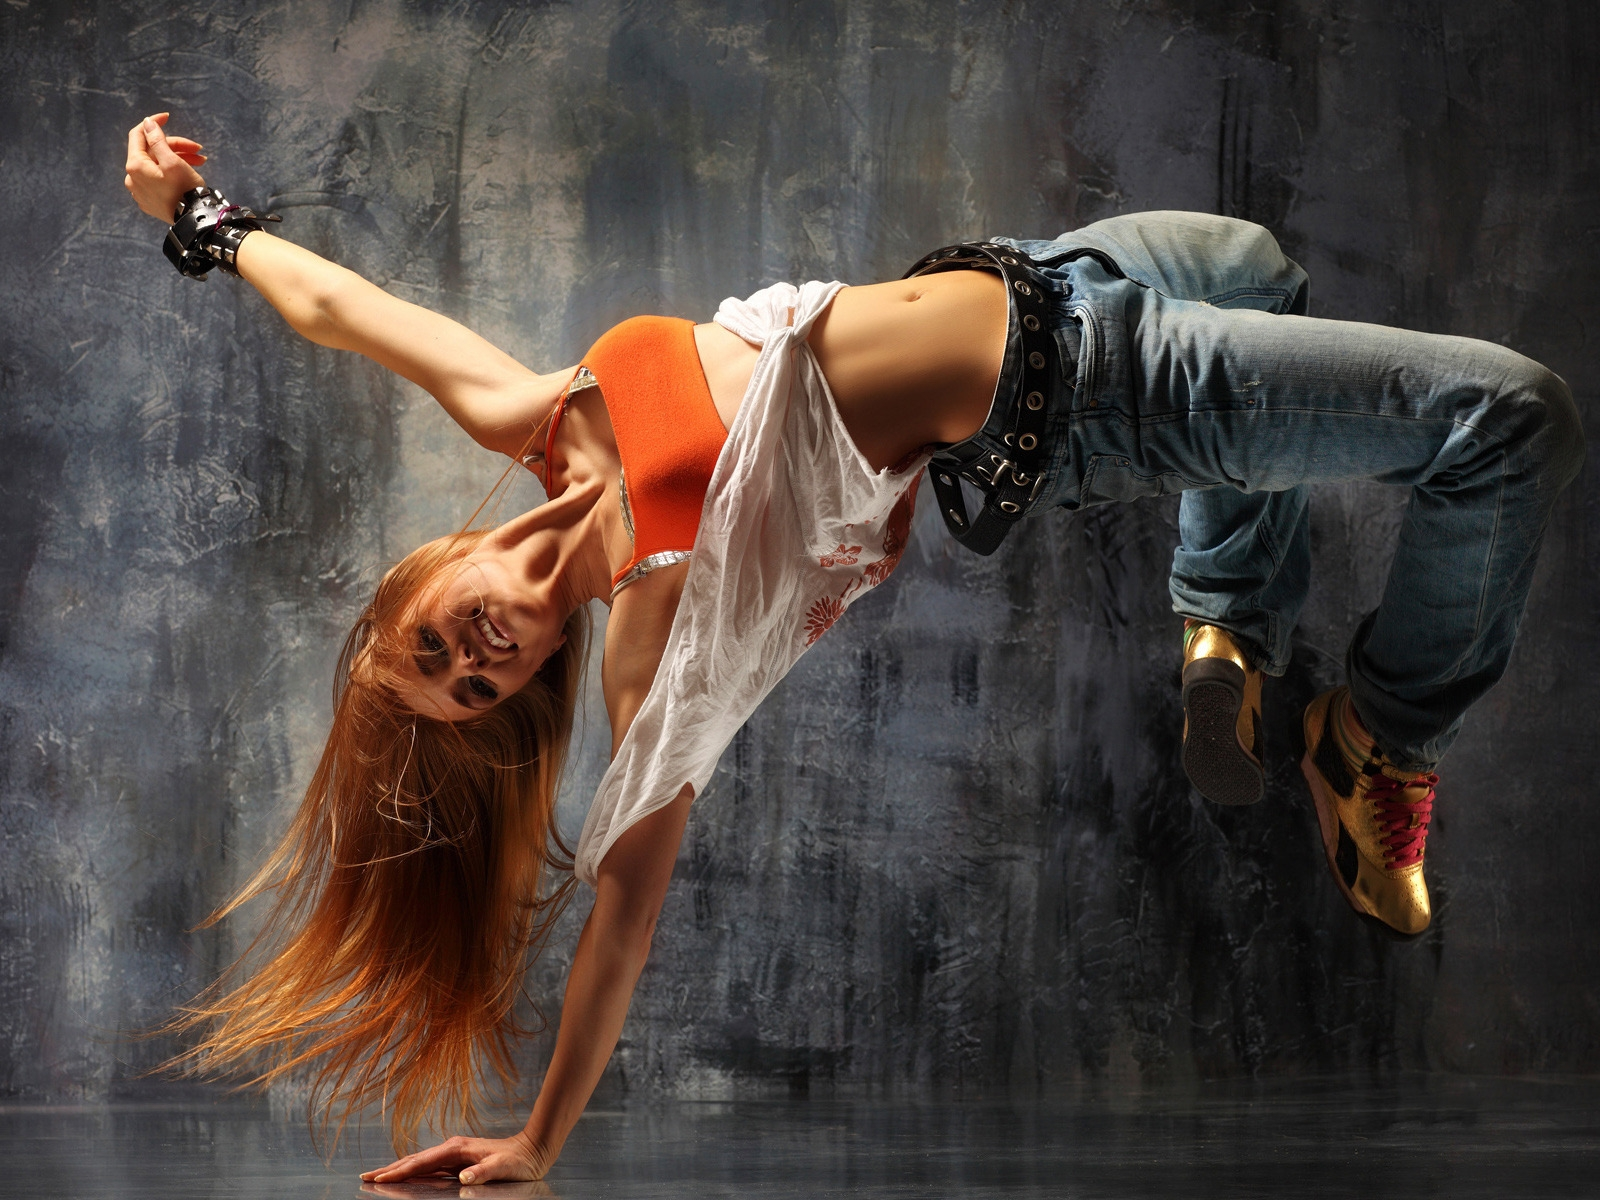 Girl Breakdancing for 1600 x 1200 resolution